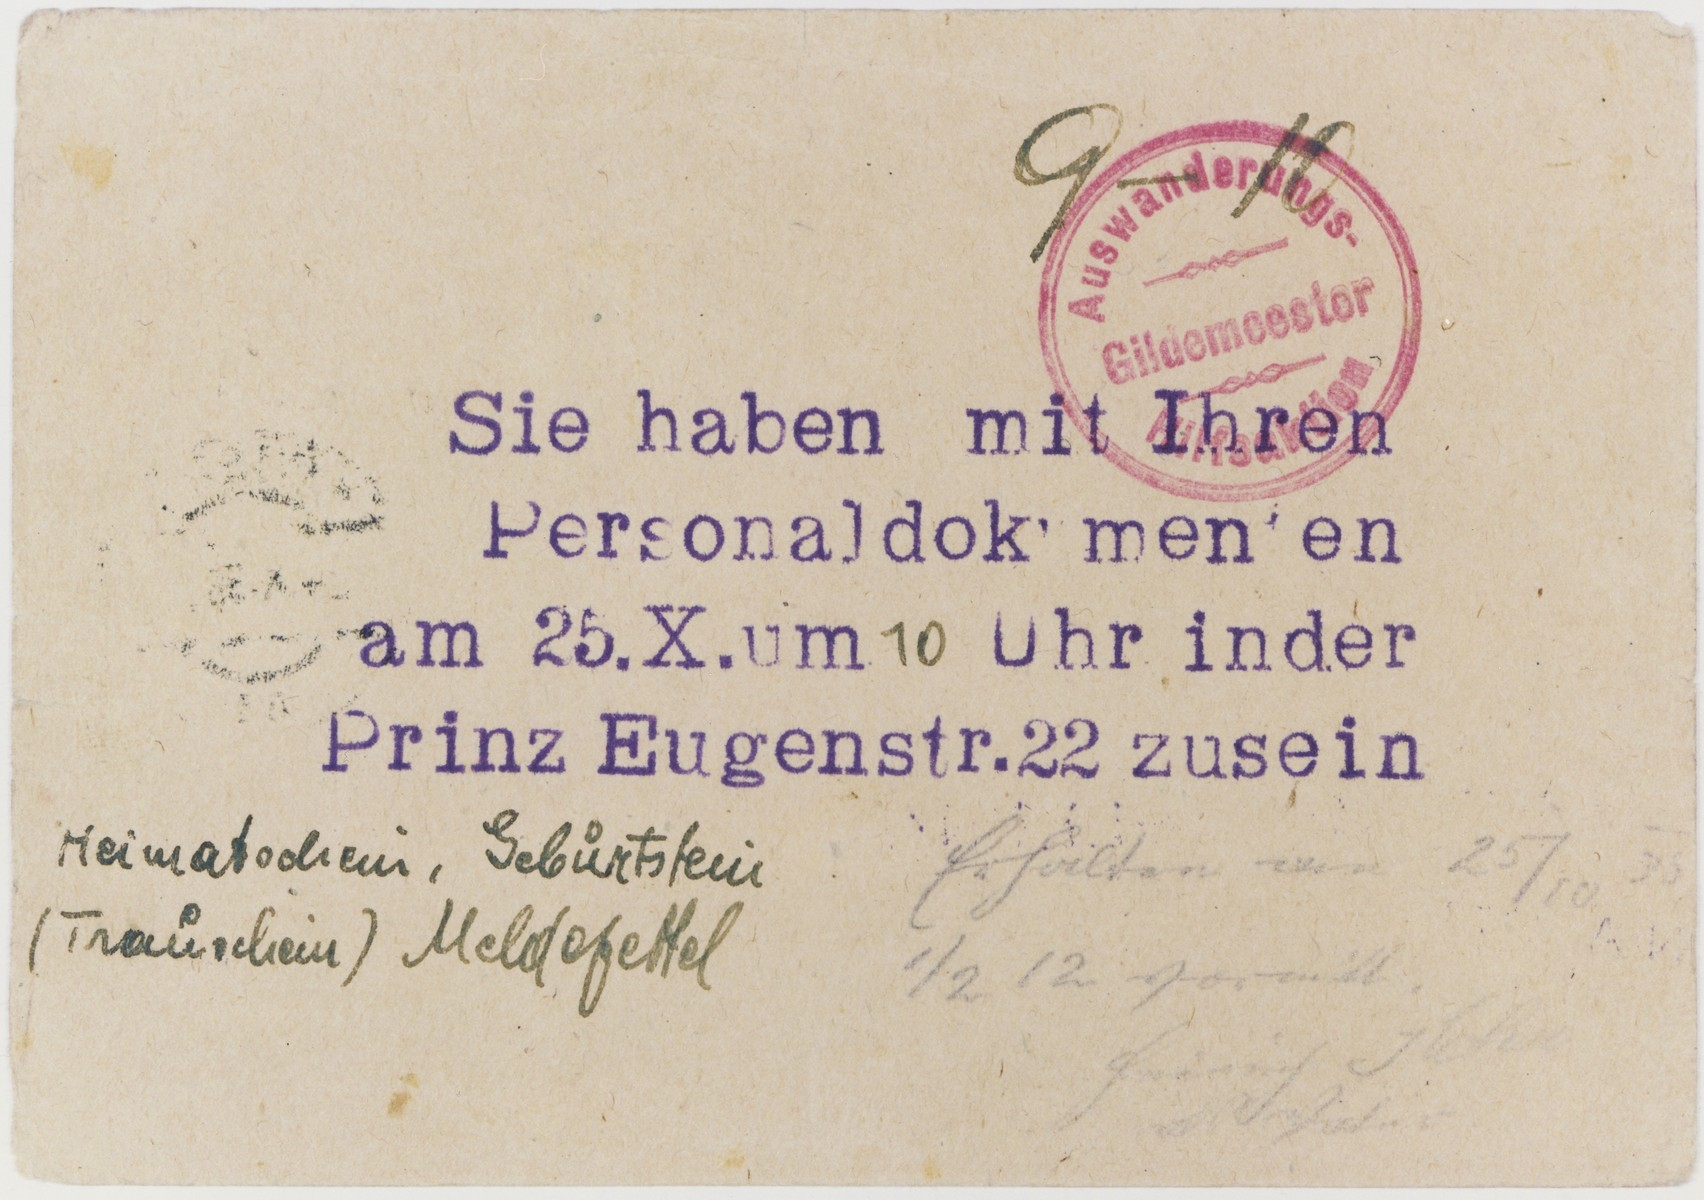 Postcard sent by the Gildemeester Auswanderungs-Hilfsaktion, summoning the recipient to appear on October 25 at 10:00a.m. with all necessary documents (residential registration, birth certificate, marriage certificate, and the postcard).     The postcard is postmarked October 24, 1938.  A pencilled notation in the lower right-hand corner states that this notice arrived on October 25 at 11:30a.m., after the appointed time for the meeting.